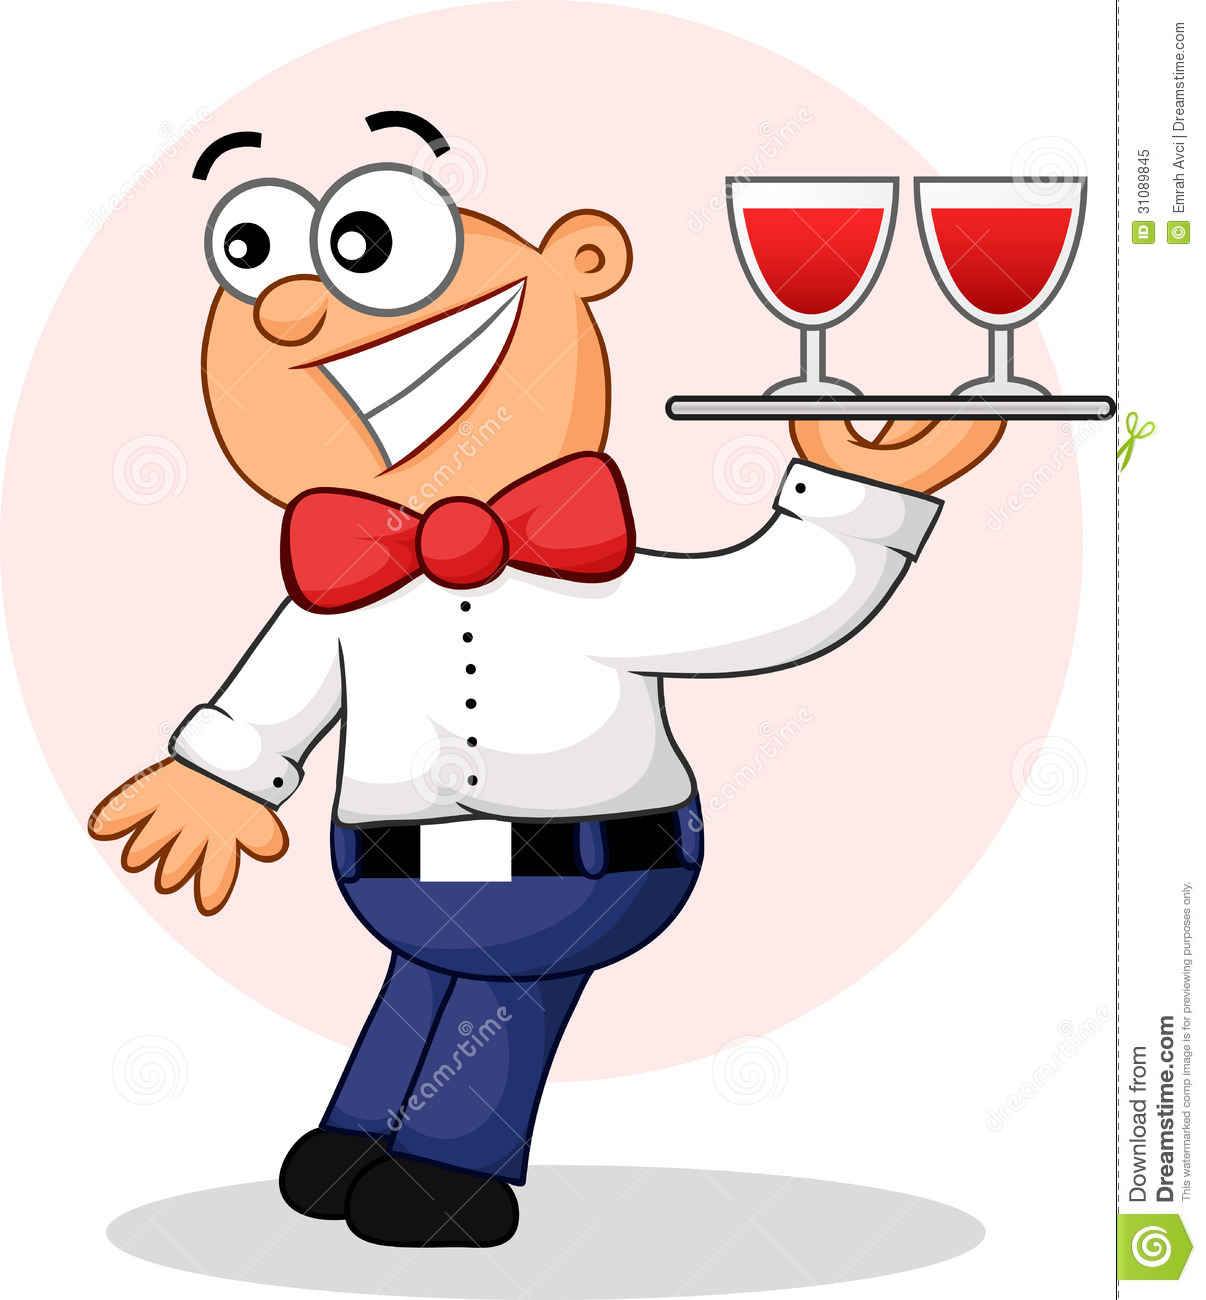 Stock Photo Surprised Waiter Cartoon Image